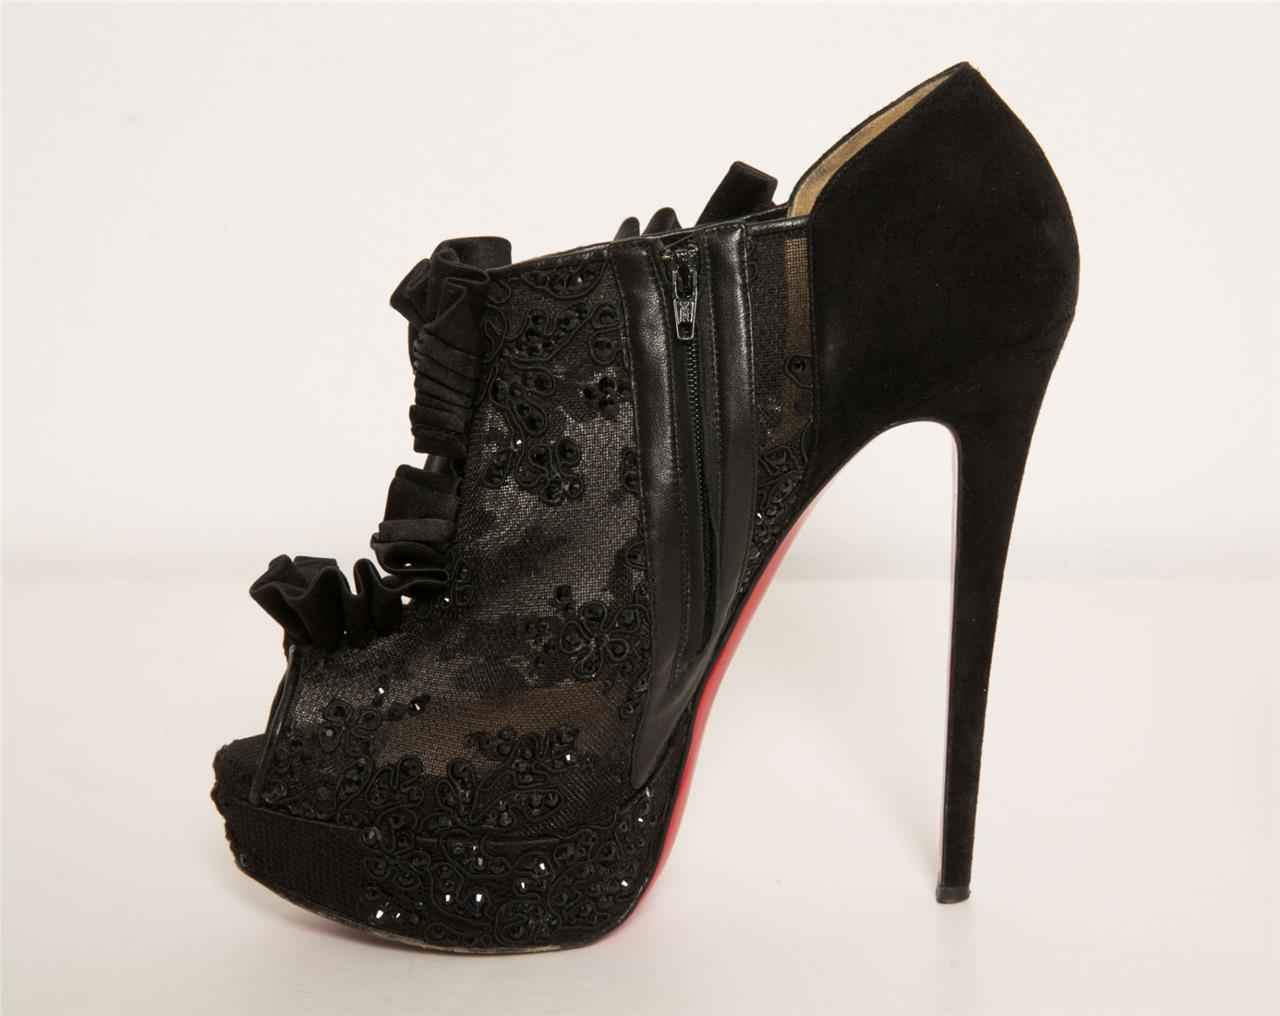 deeb28c3daf Details about CHRISTIAN LOUBOUTIN Margot Black Mesh Peep-Toe Floral Crystal  Bootie Pumps 39.5